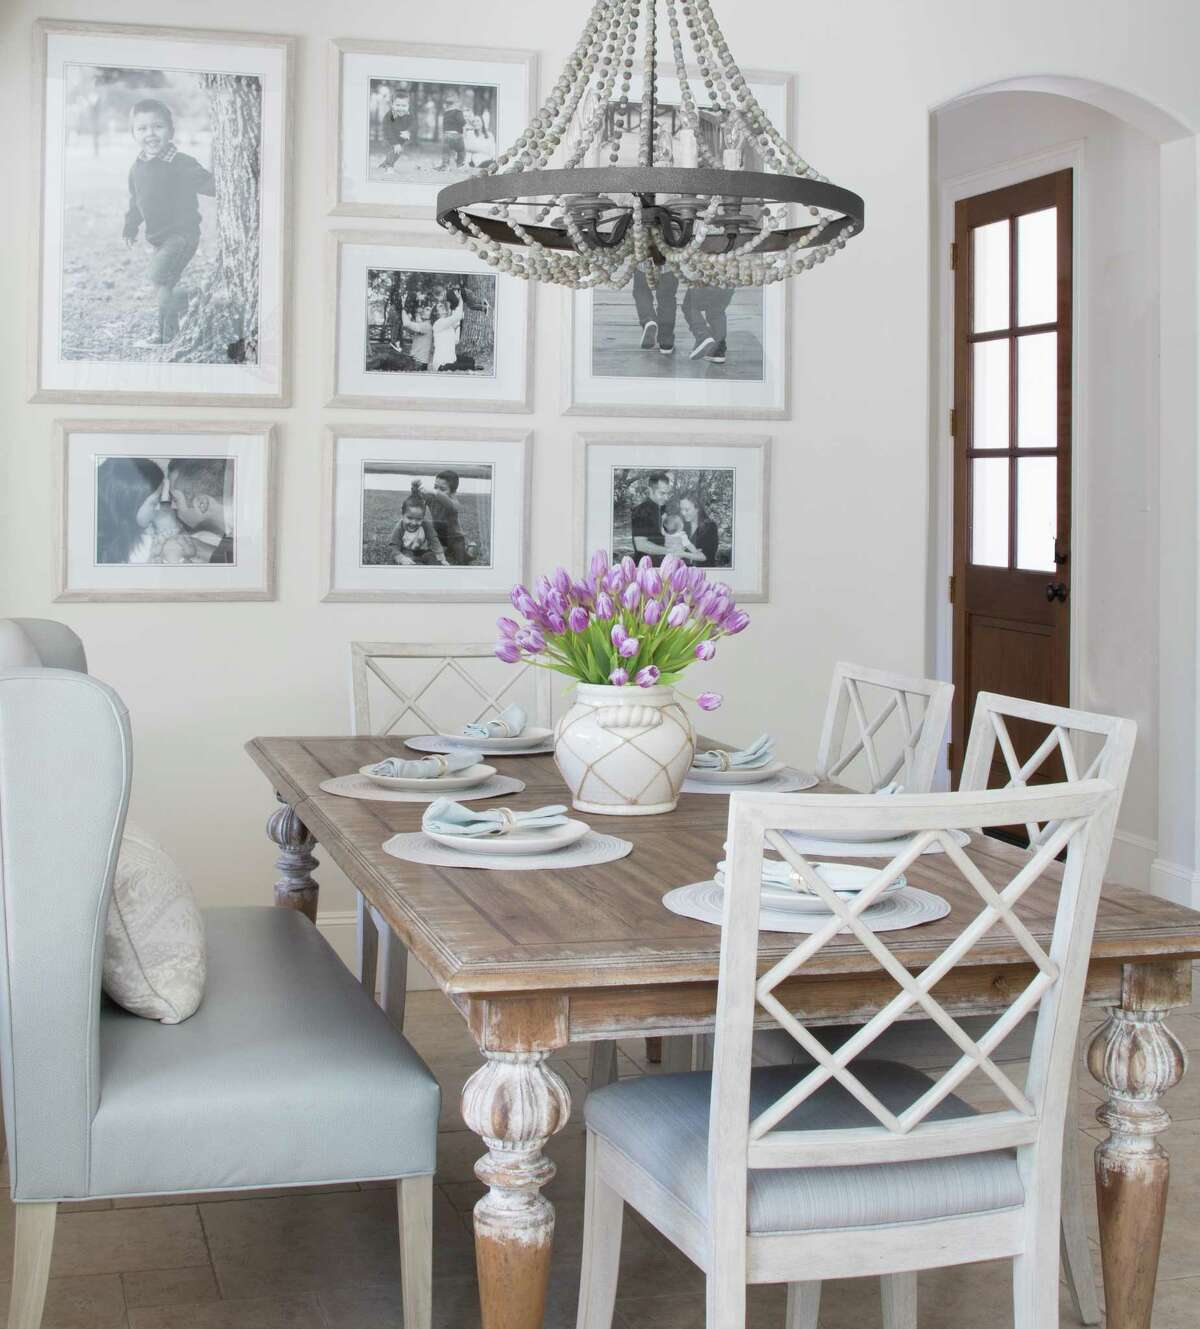 The breakfast room in the Memorial home of Courtney and Karrie Amor.